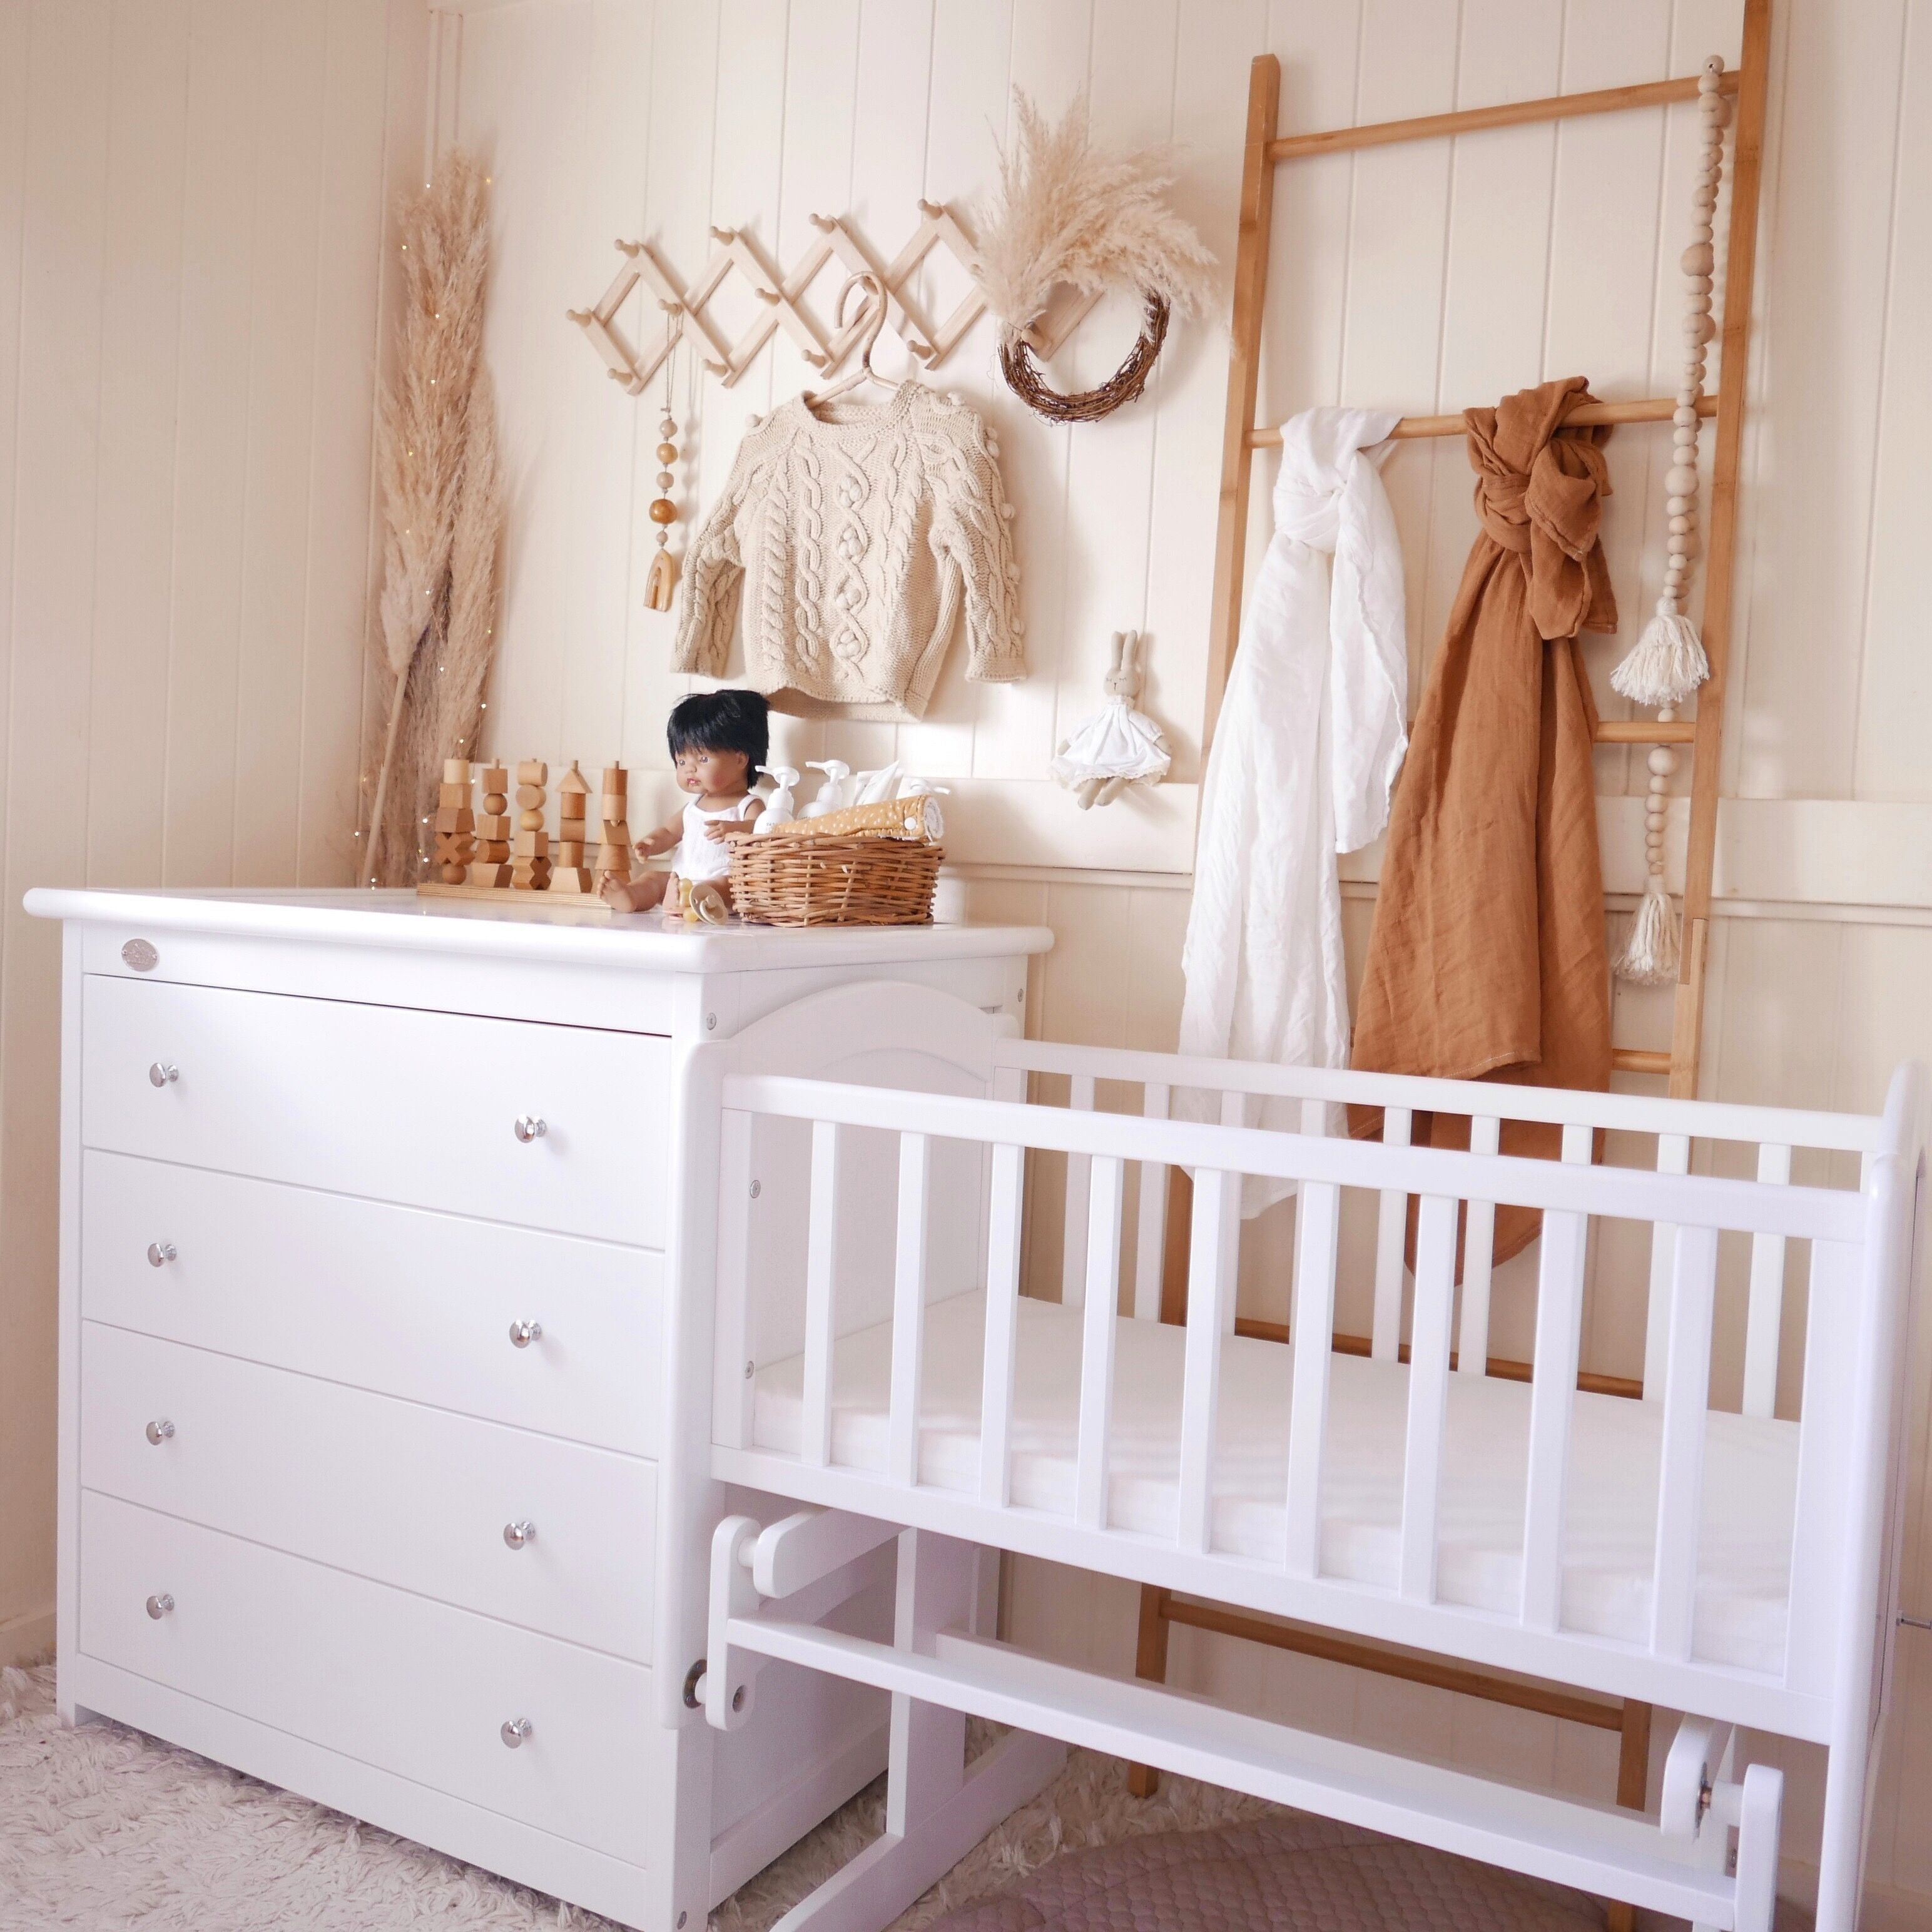 Chest of Drawers and Rocking Cradle Styled in Nursery